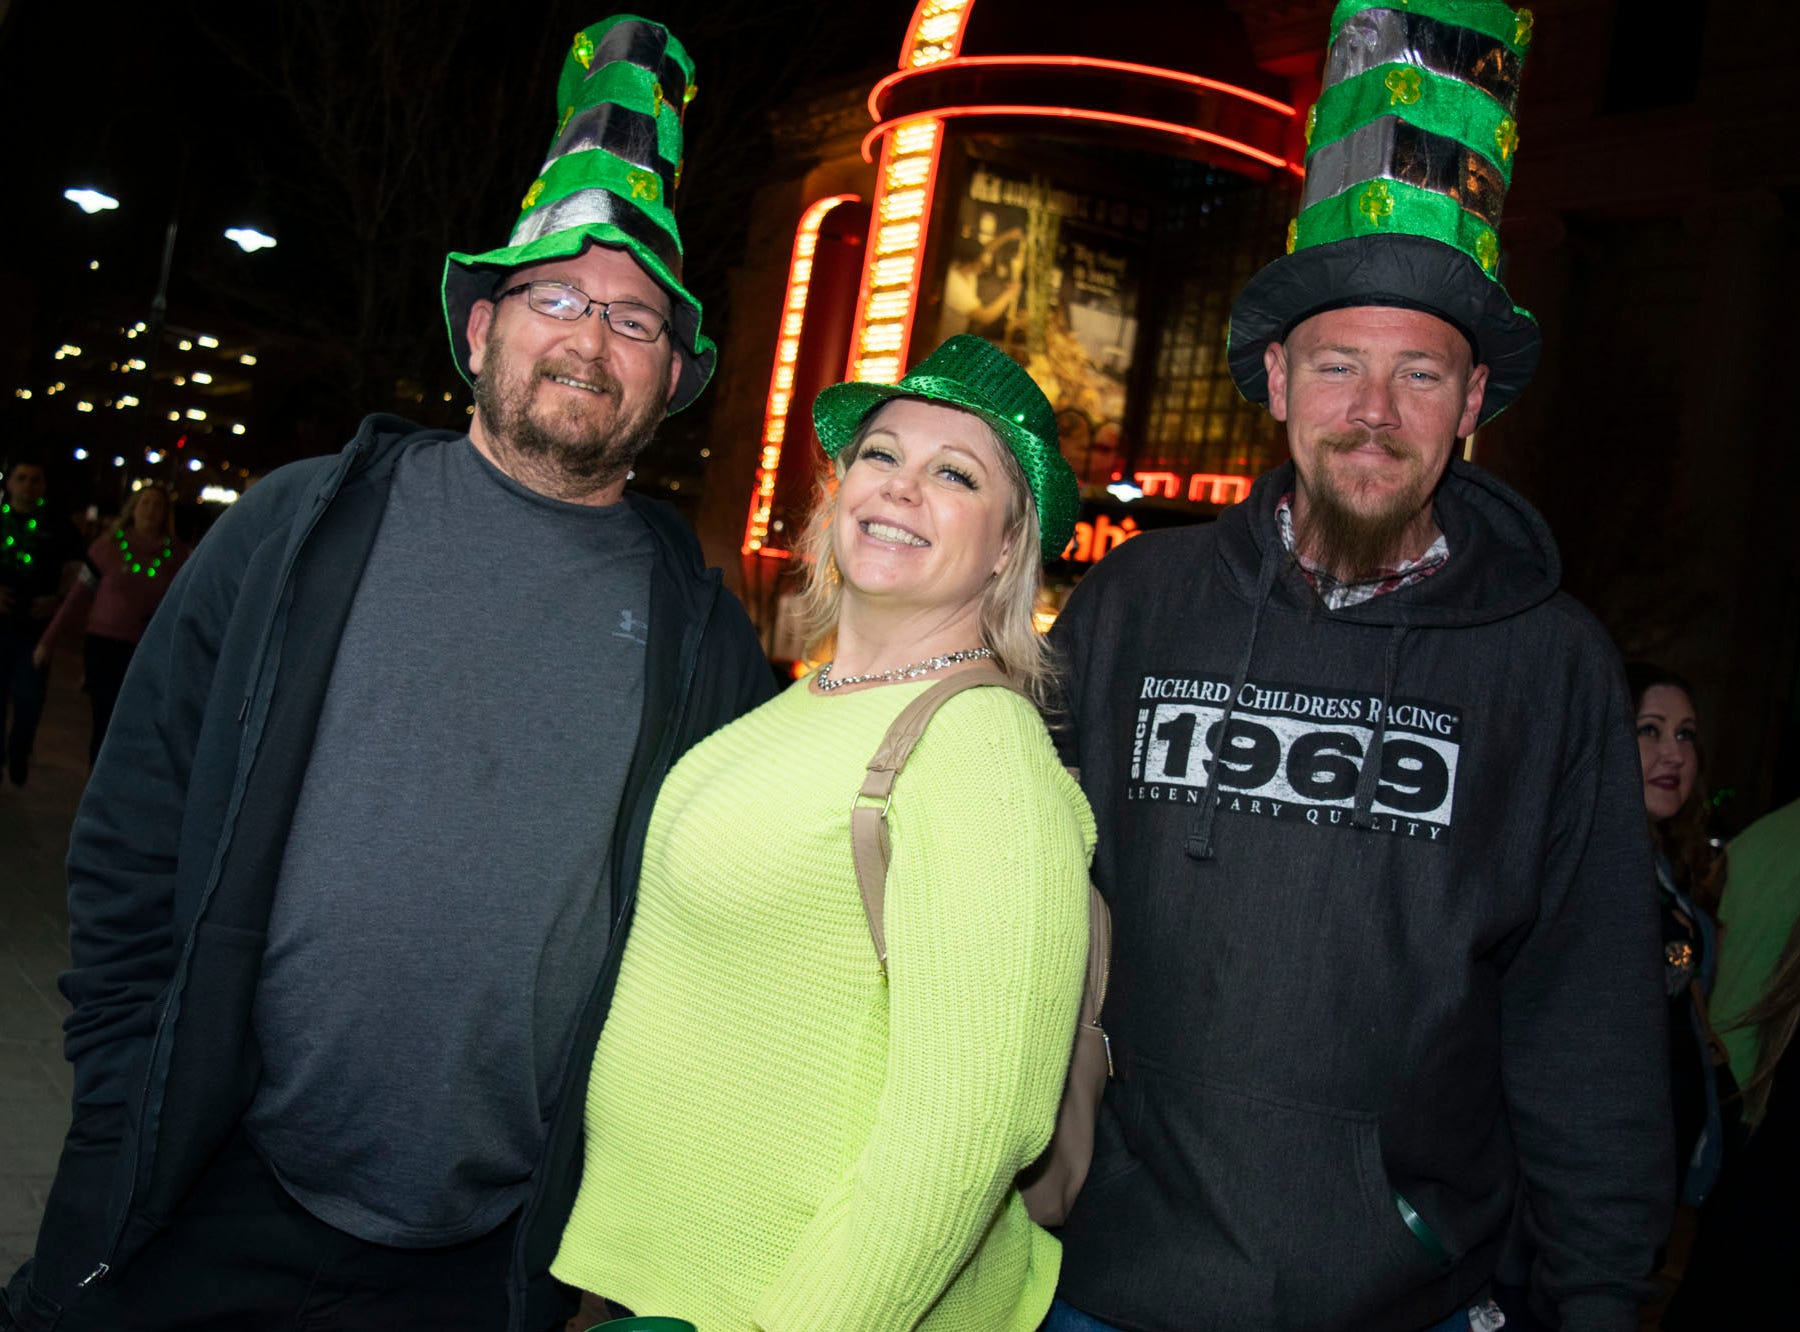 Crawlers grab their shamrocks and their pots of gold for the 2019 Leprechaun Crawl on Saturday, March 16, 2019. Reno, Nev.